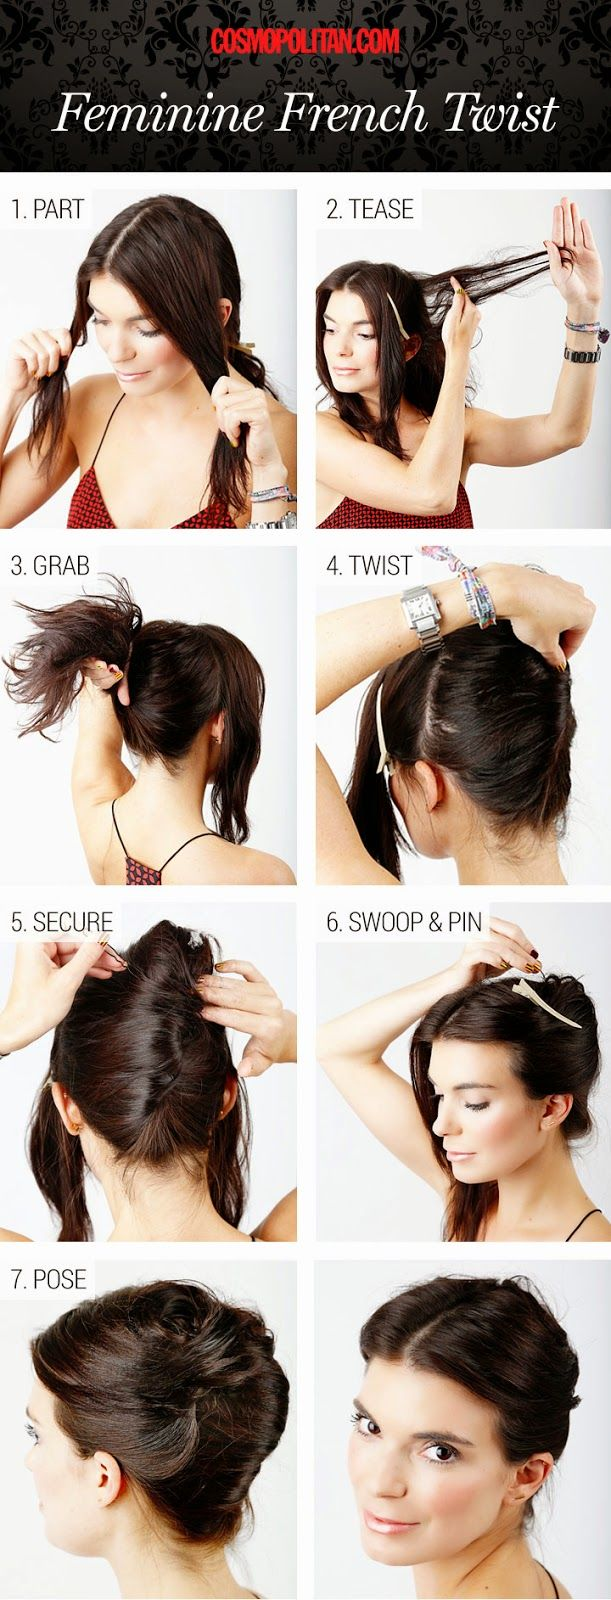 french twist hairstyle hair tutorial. Amazingly easy to make french twist hairstyle. French twist ...